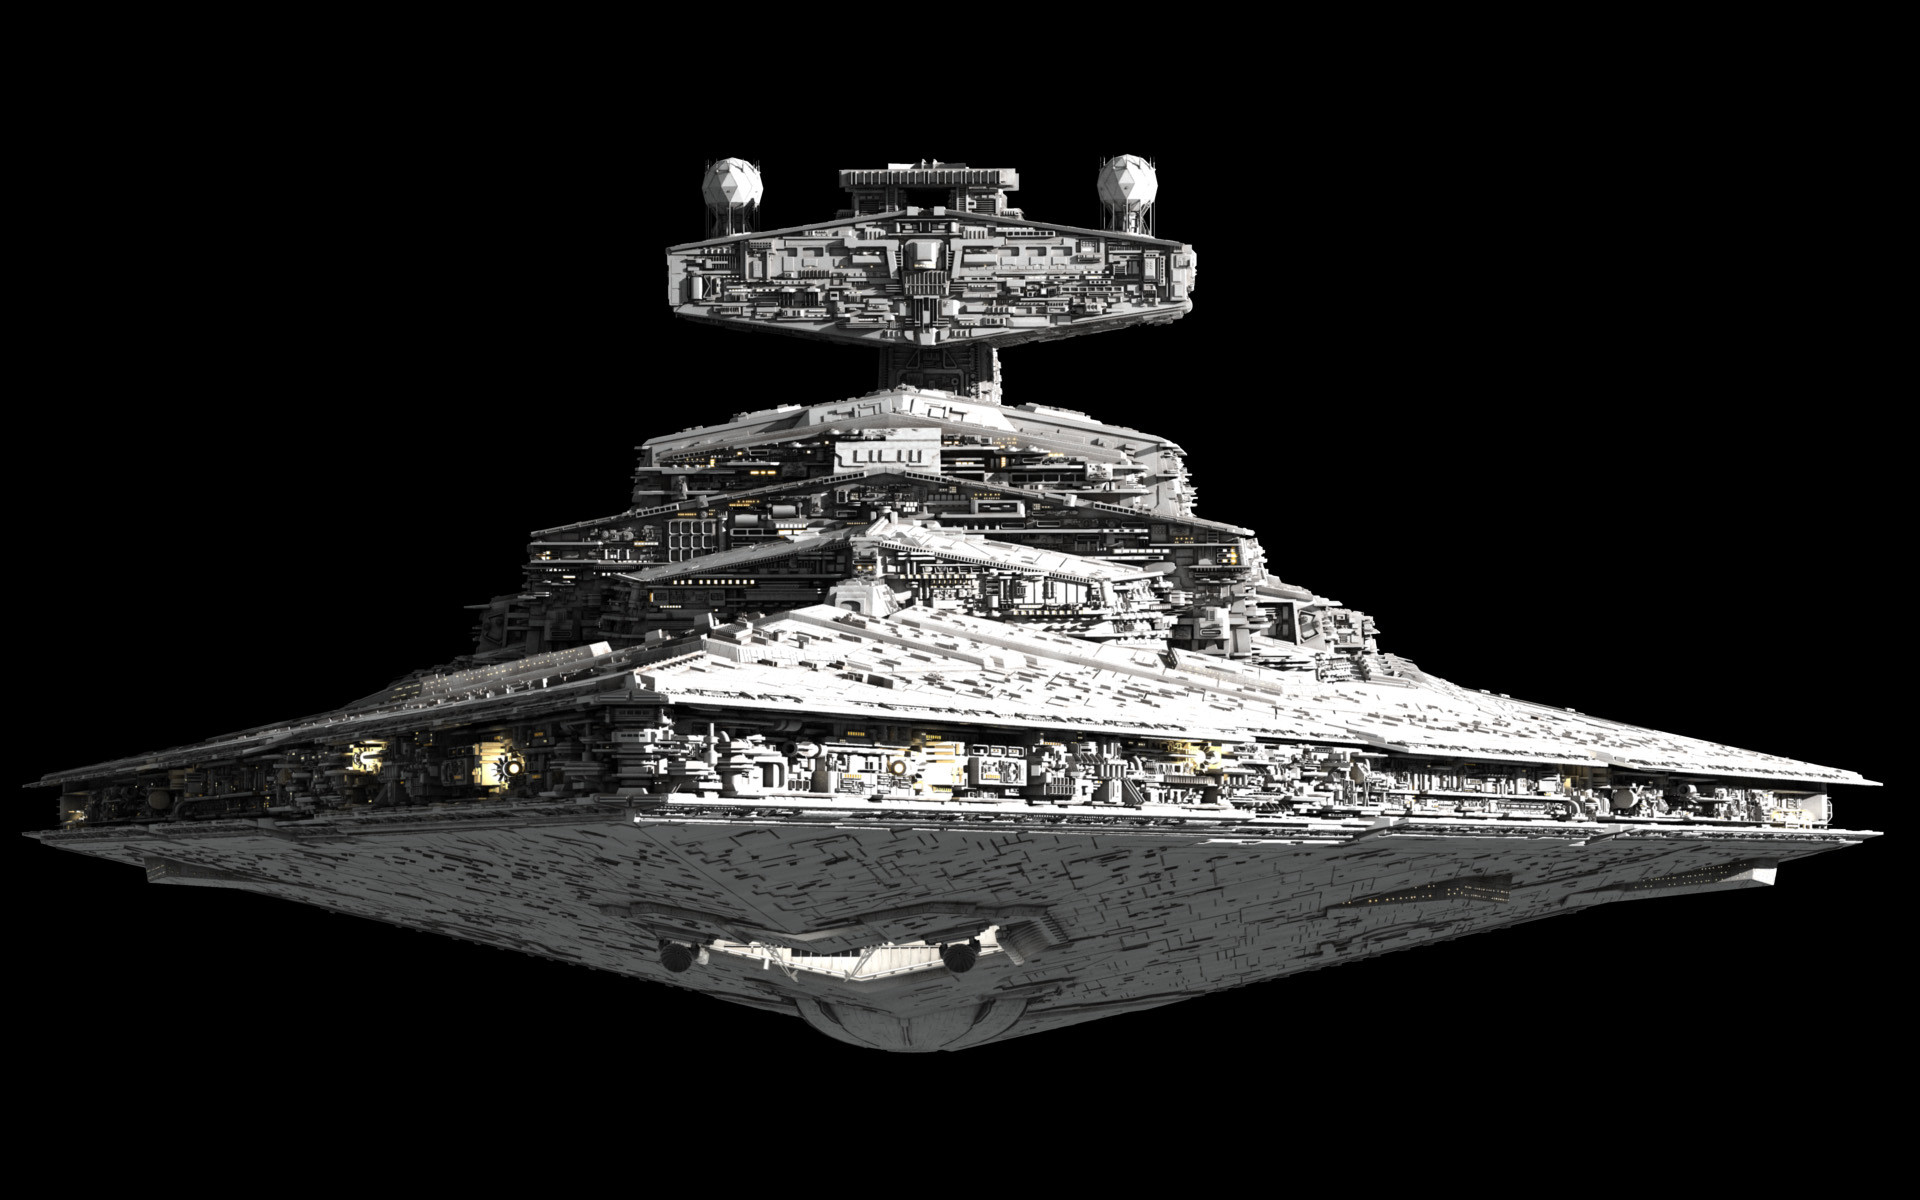 An Imperial-class Star Destroyer. Why do the bad guys always get the  coolest stuff?